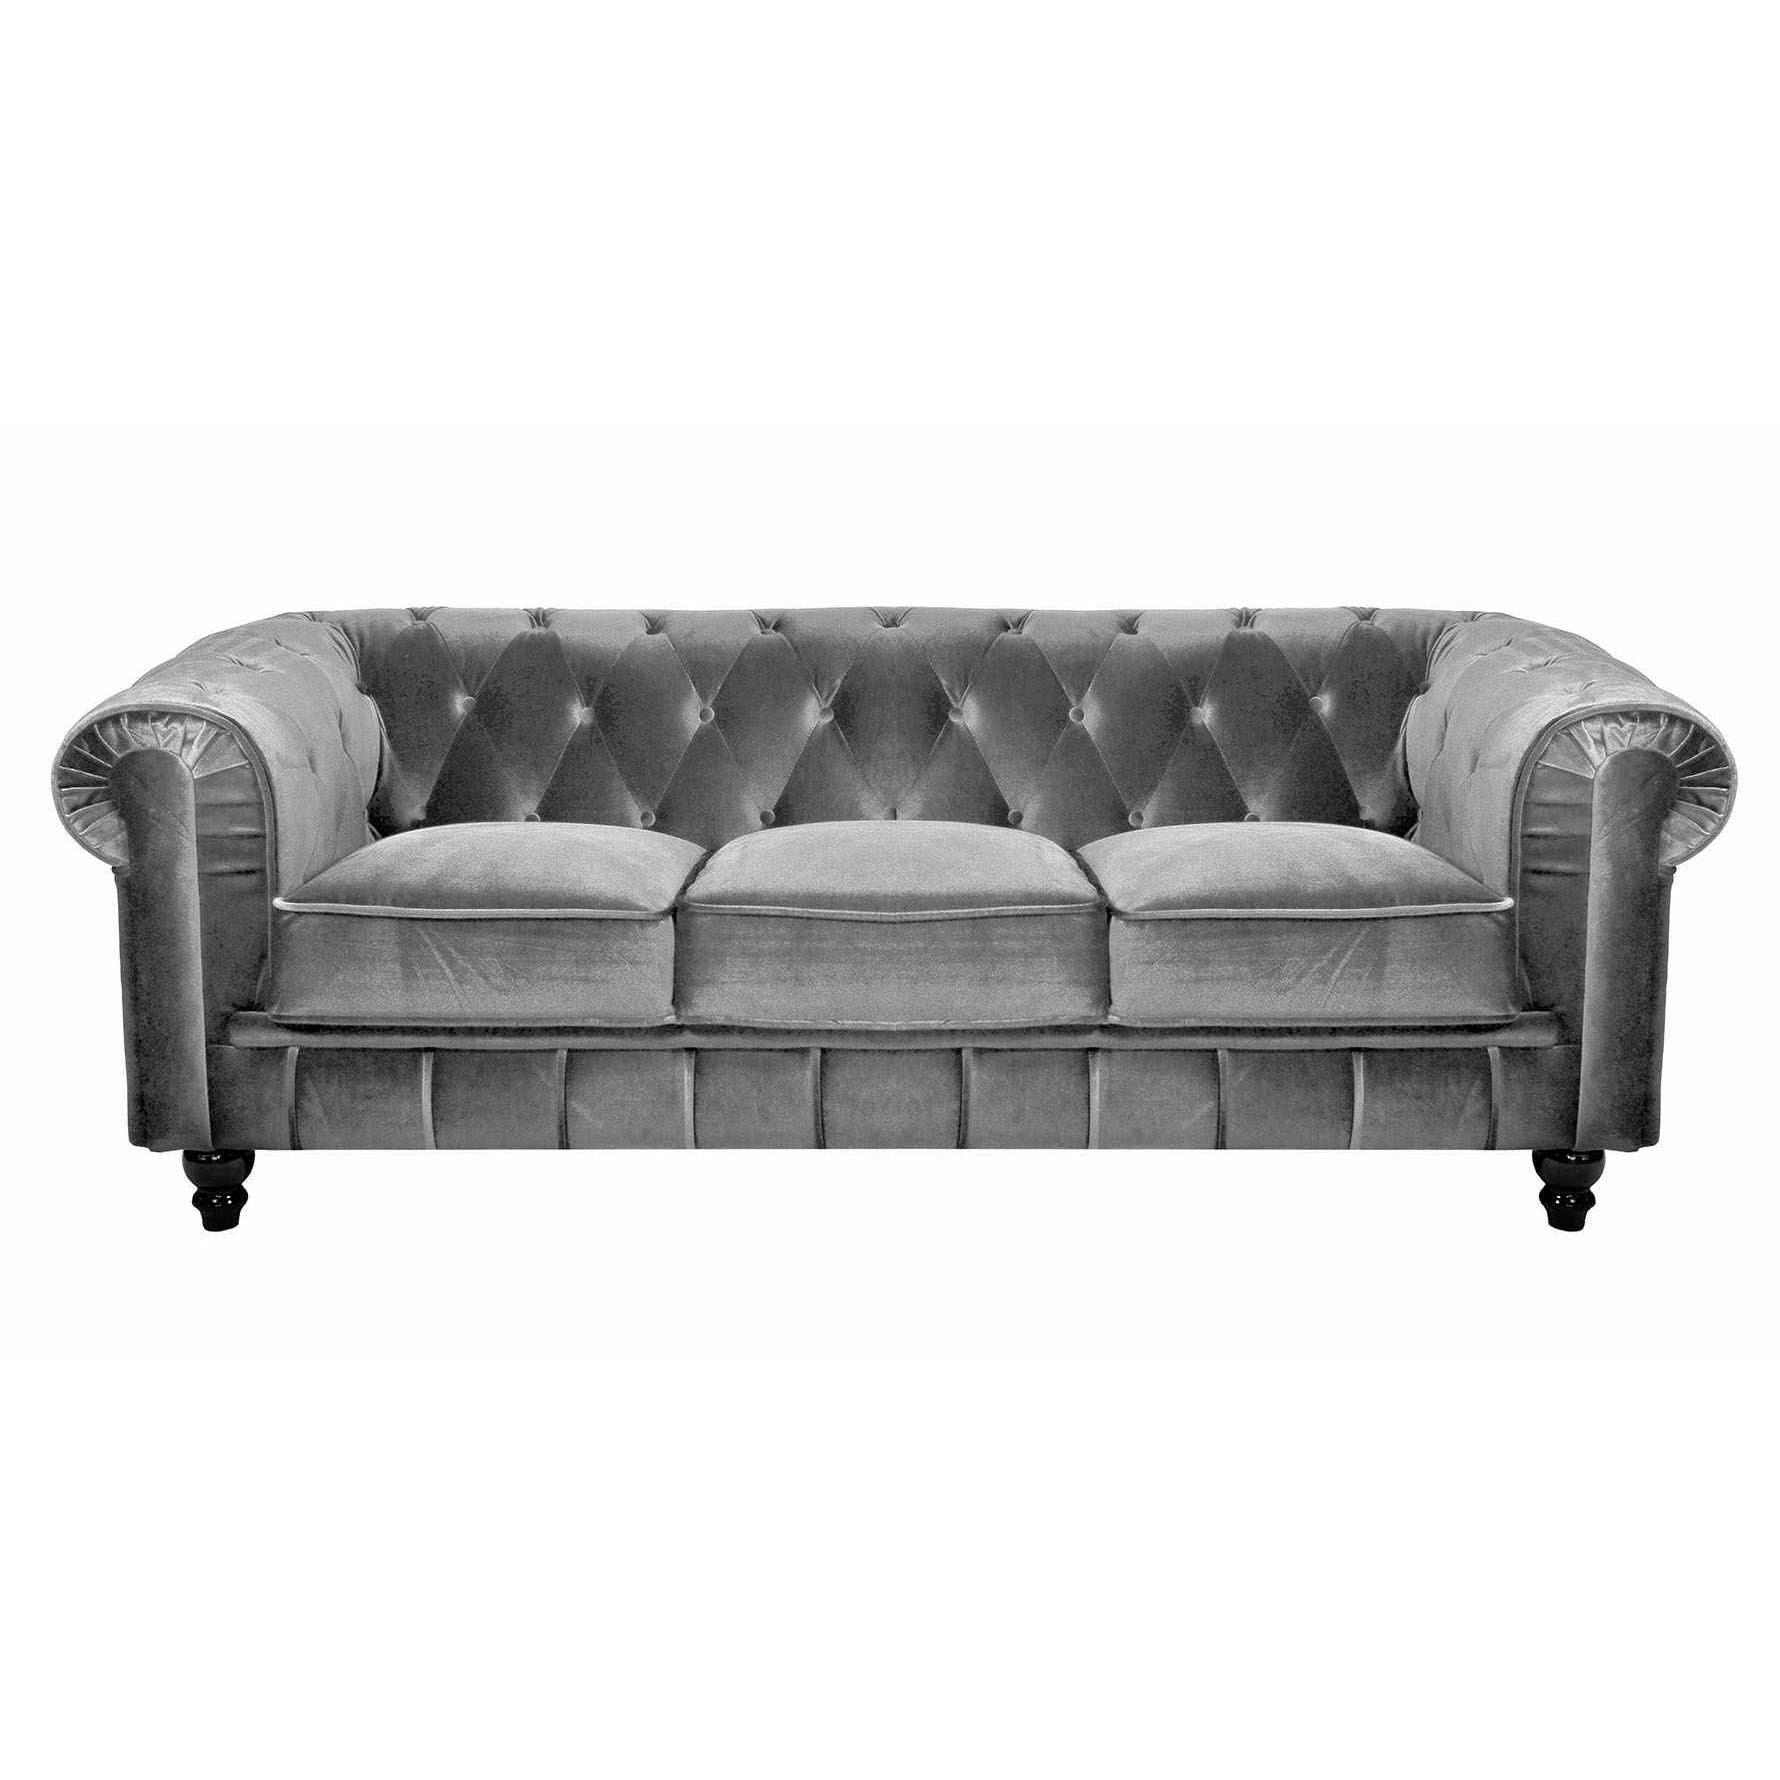 Canape chesterfield places for Chesterfield canape